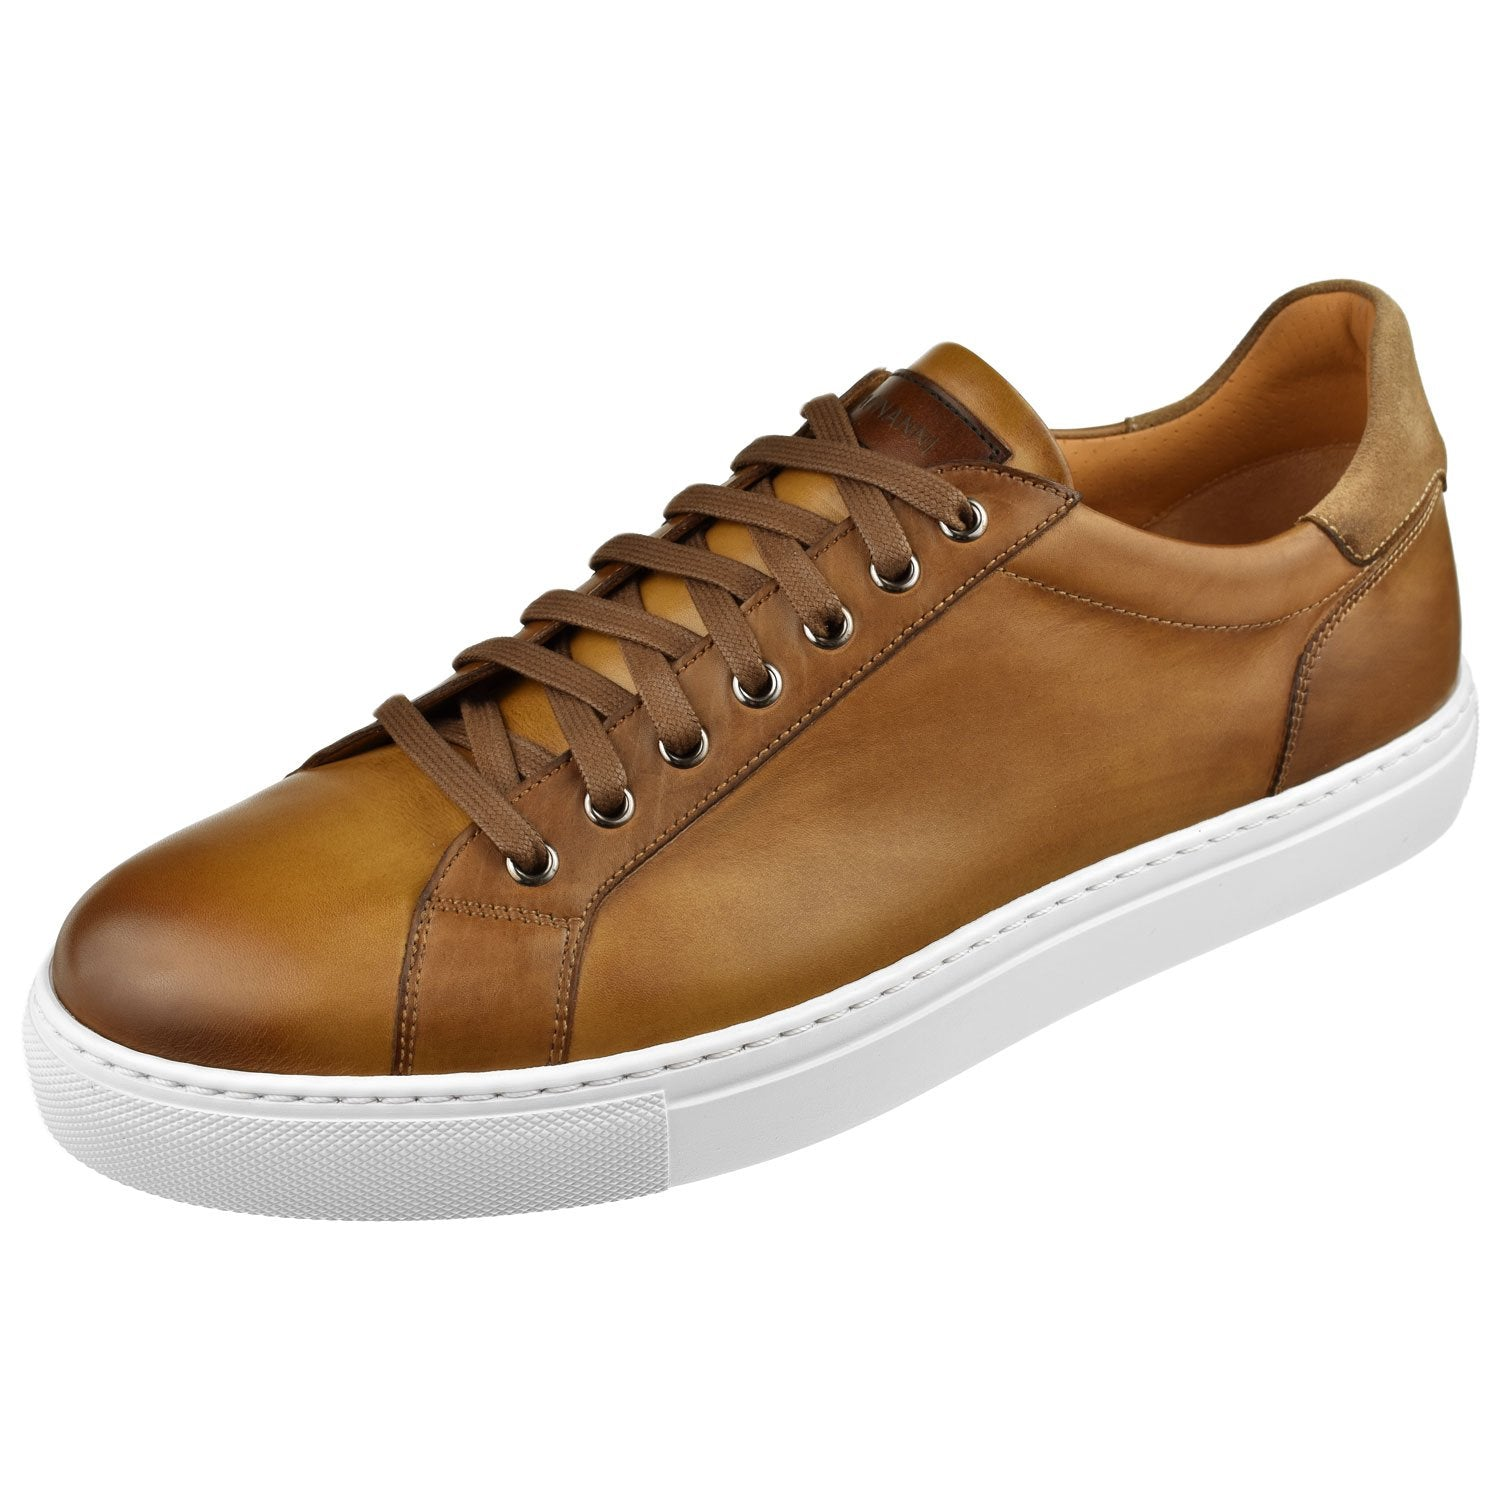 Huston Lo II Sneaker - Oak Hall